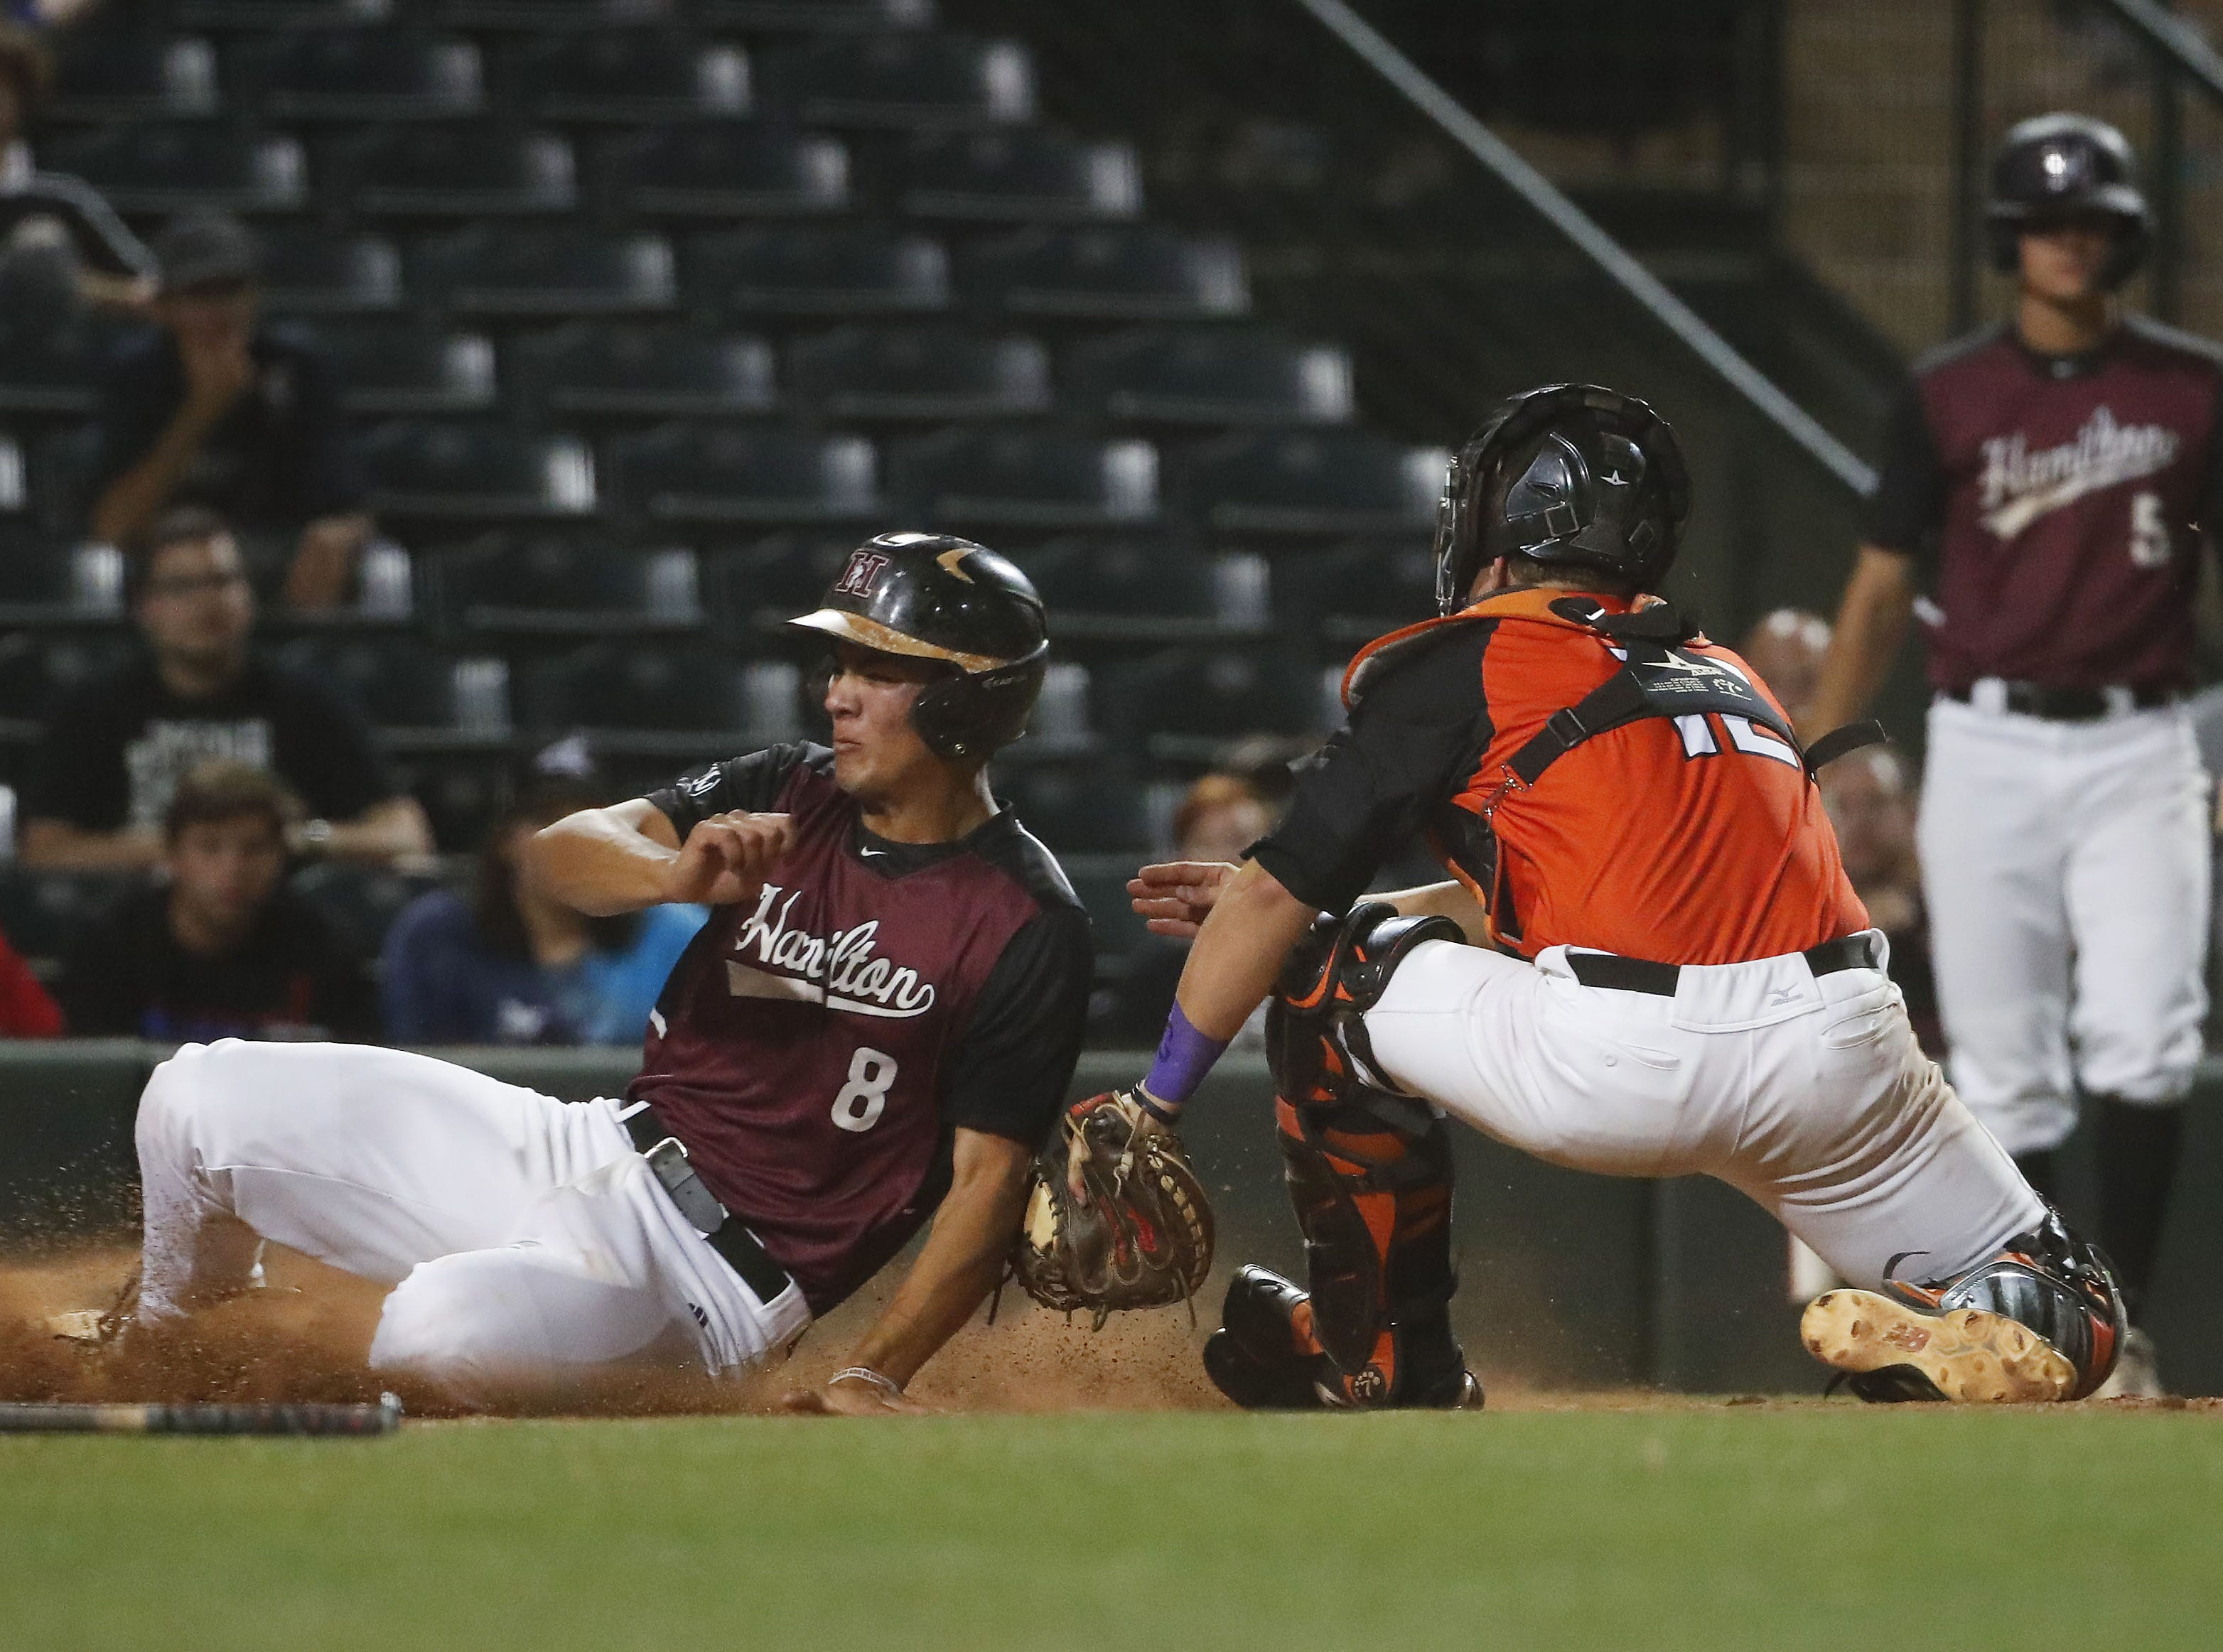 Hamilton first baseman Tyler Wilson (8) is tagged out at home by Corona del Sol catcher Ben Click (12) during the 6A State Baseball Championship in Tempe, Ariz. May 14, 2019.